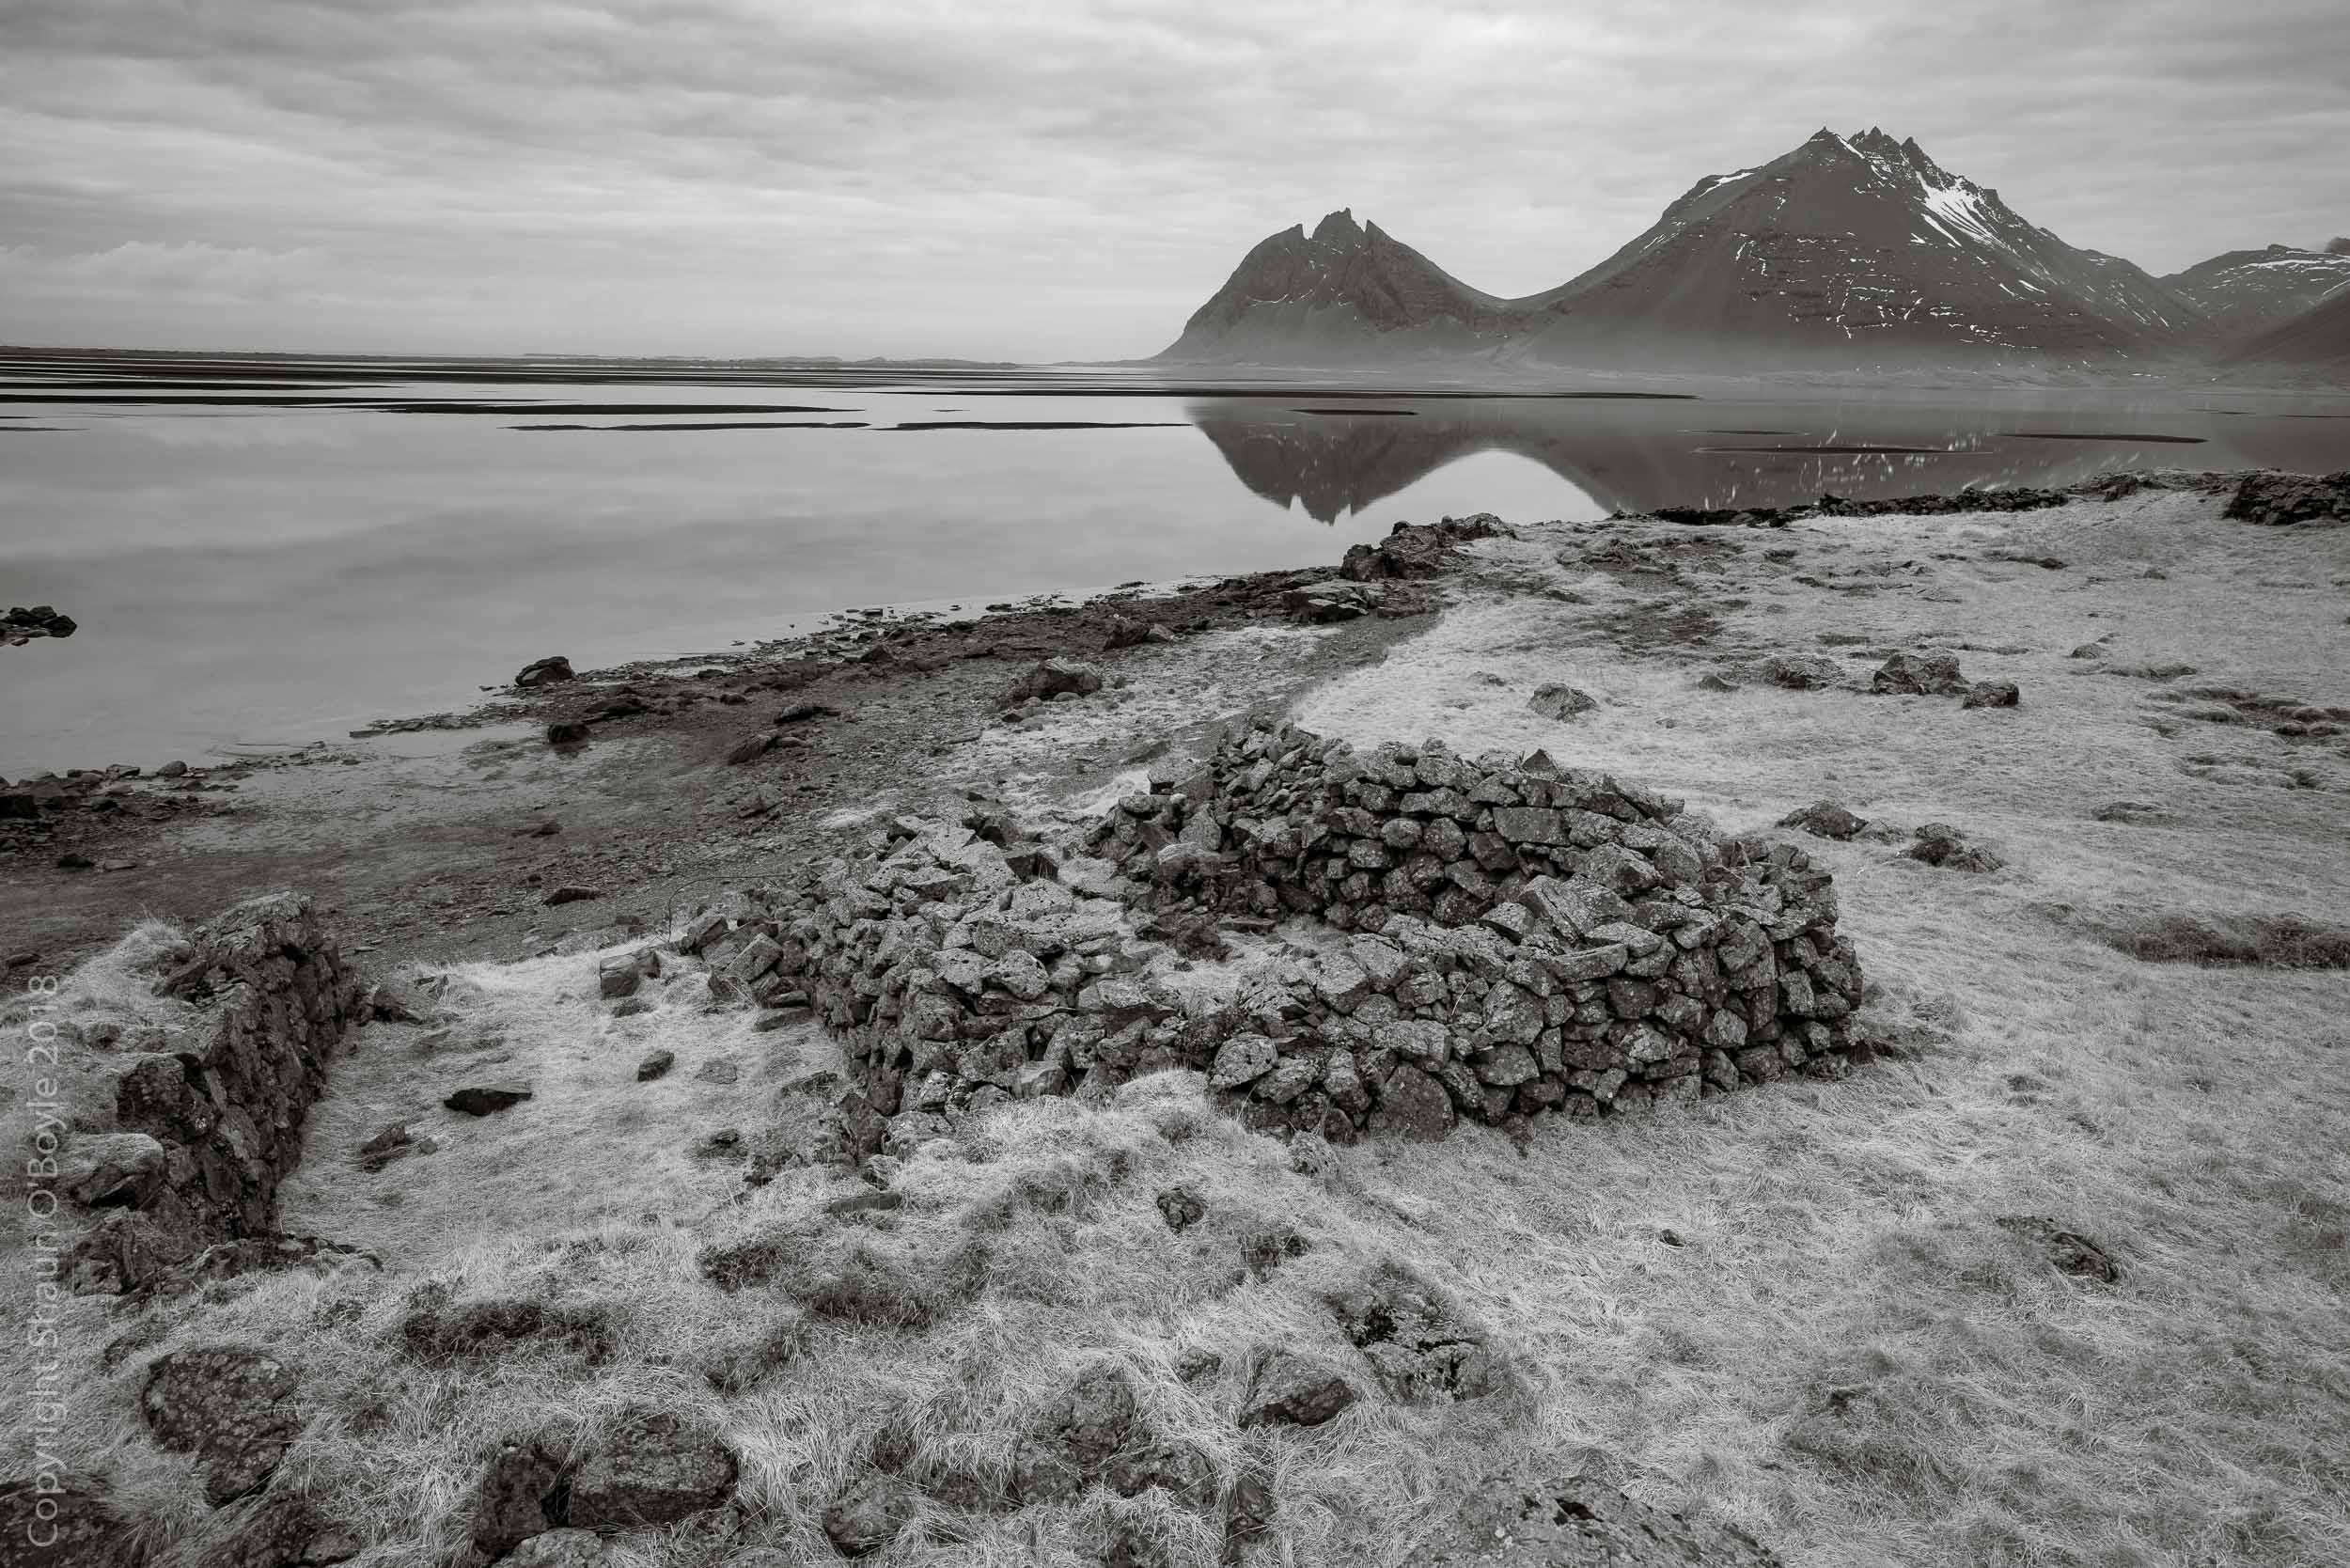 Old stone fishing huts at Klif, Iceland